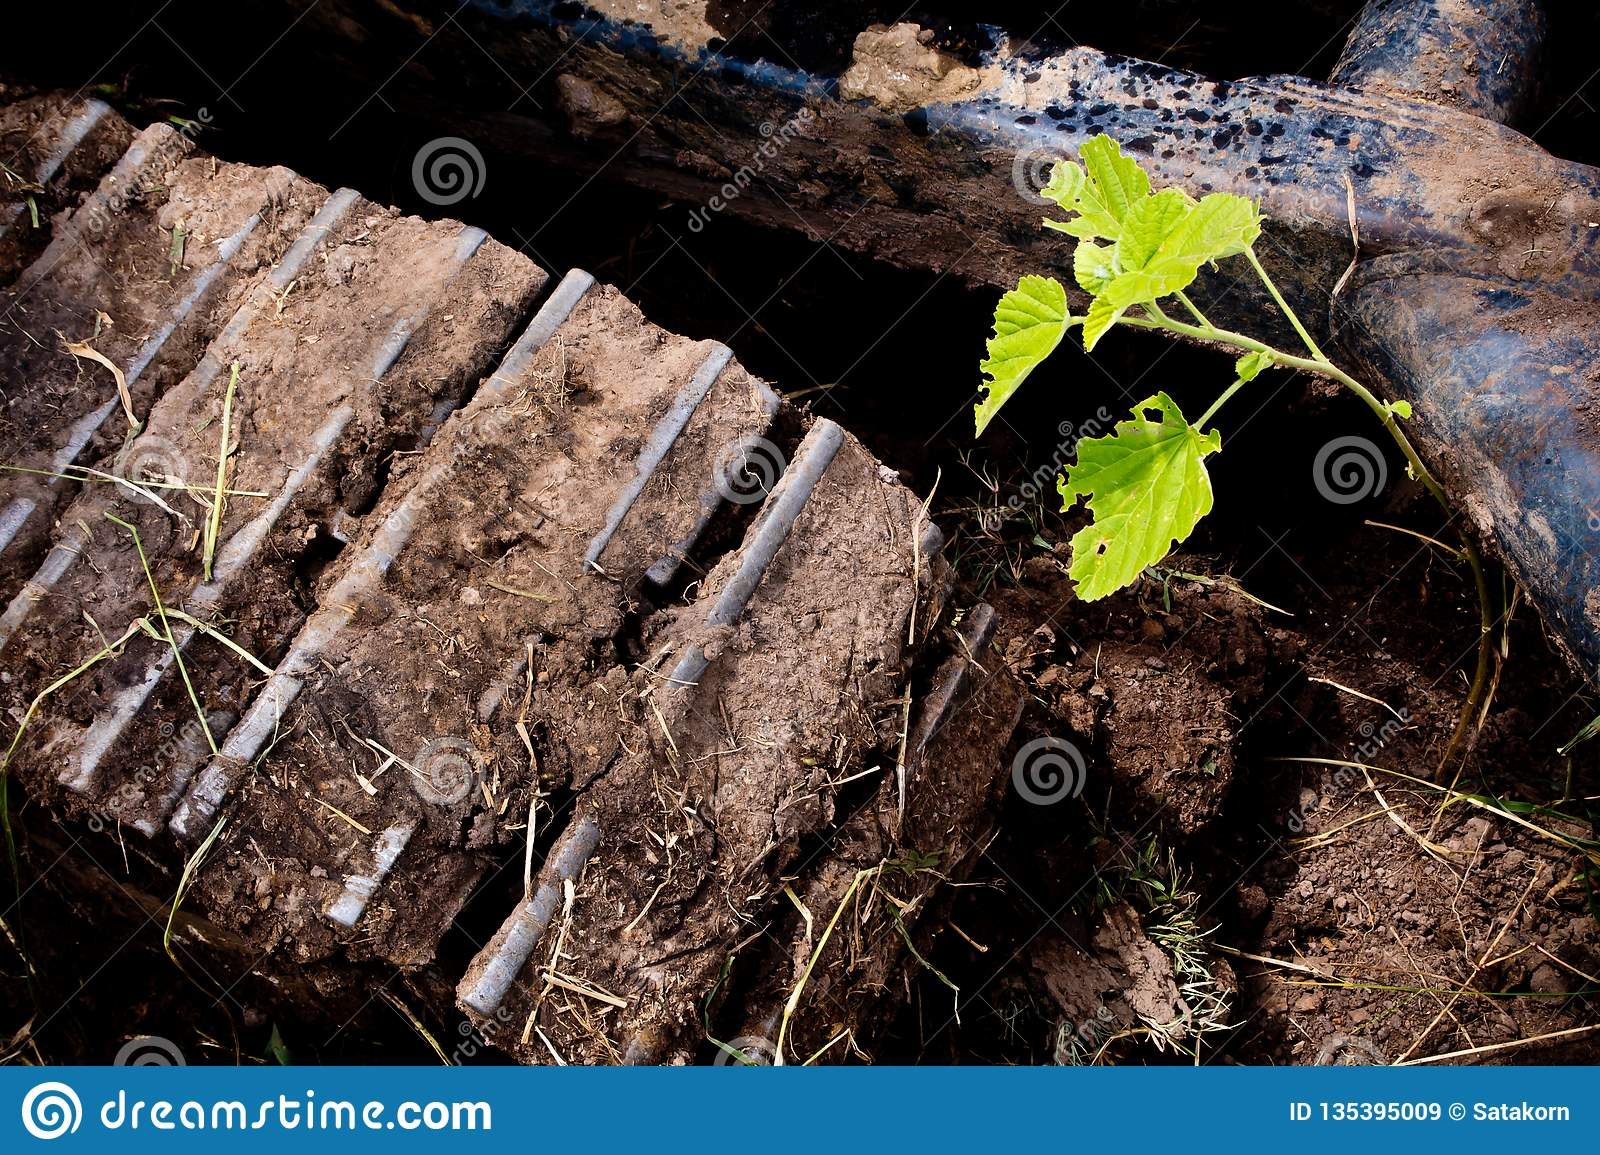 Small plant is hinder the track of excavator